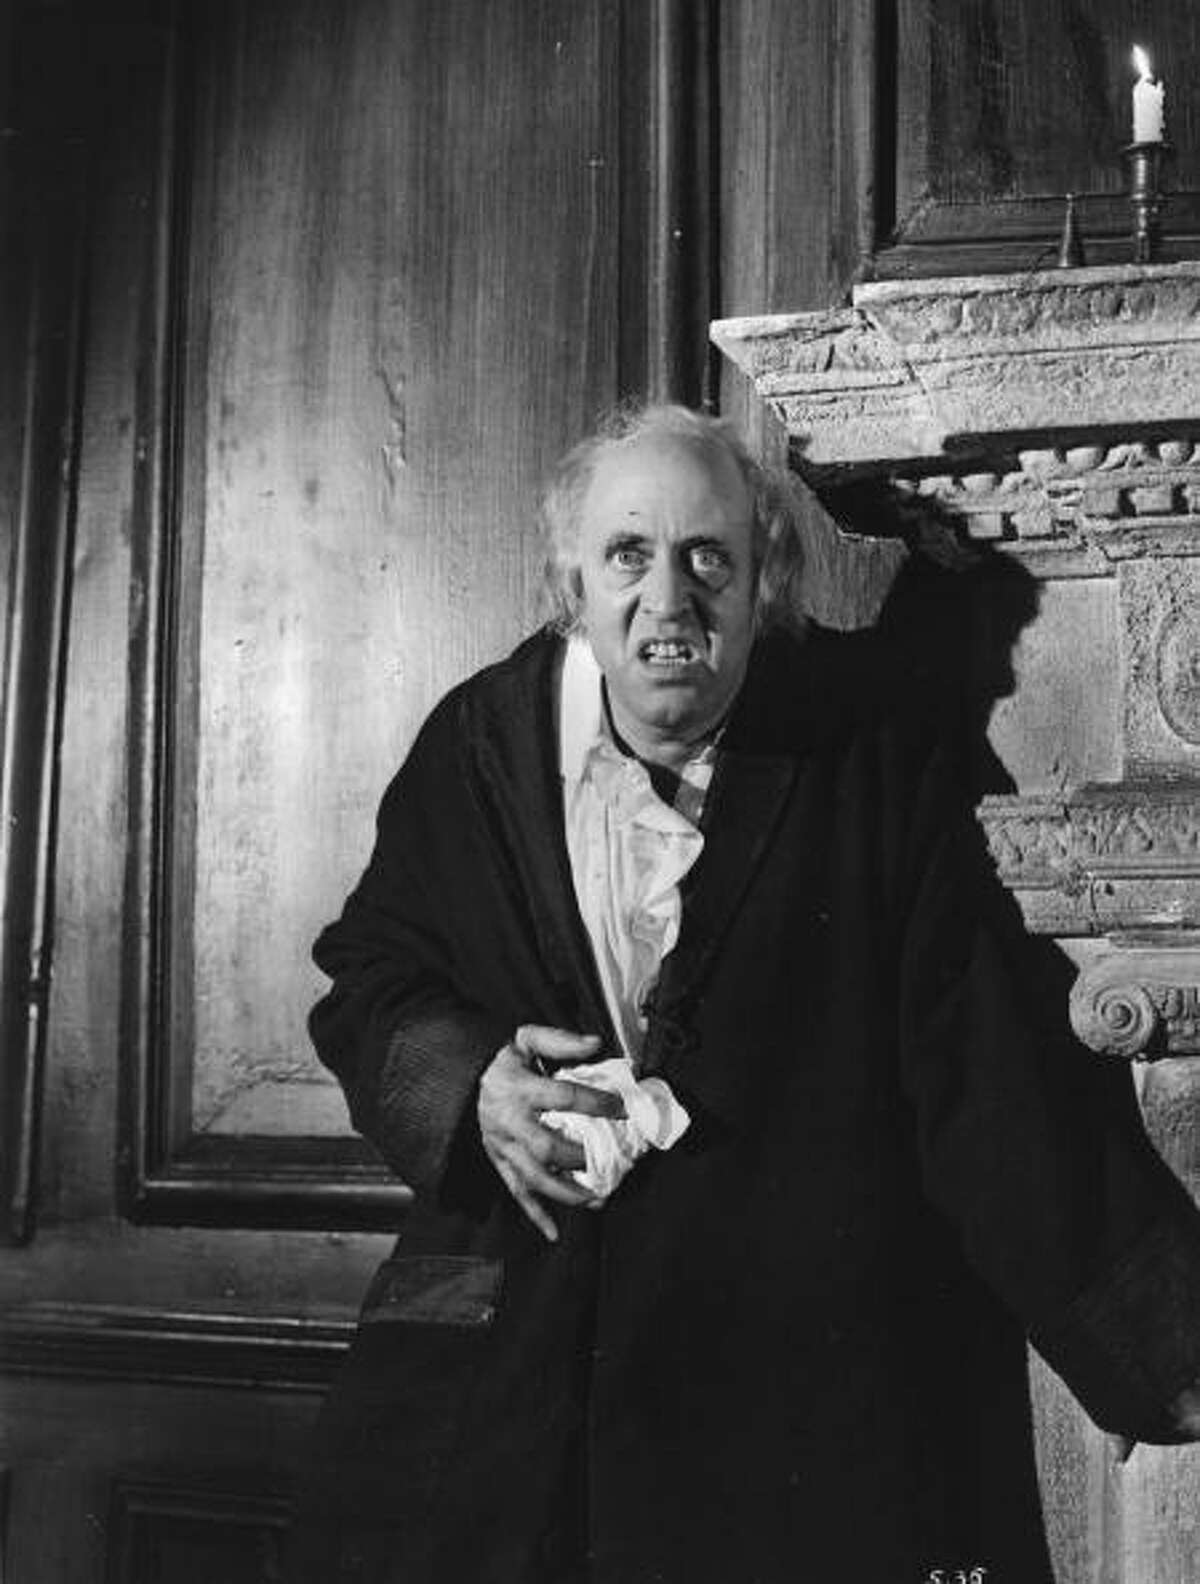 1951: Alastair Sim stars in the film 'Scrooge' (aka 'A Christmas Carol'), directed by Brian Desmond Hurst for Renown. (Photo by Hulton Archive/Getty Images)